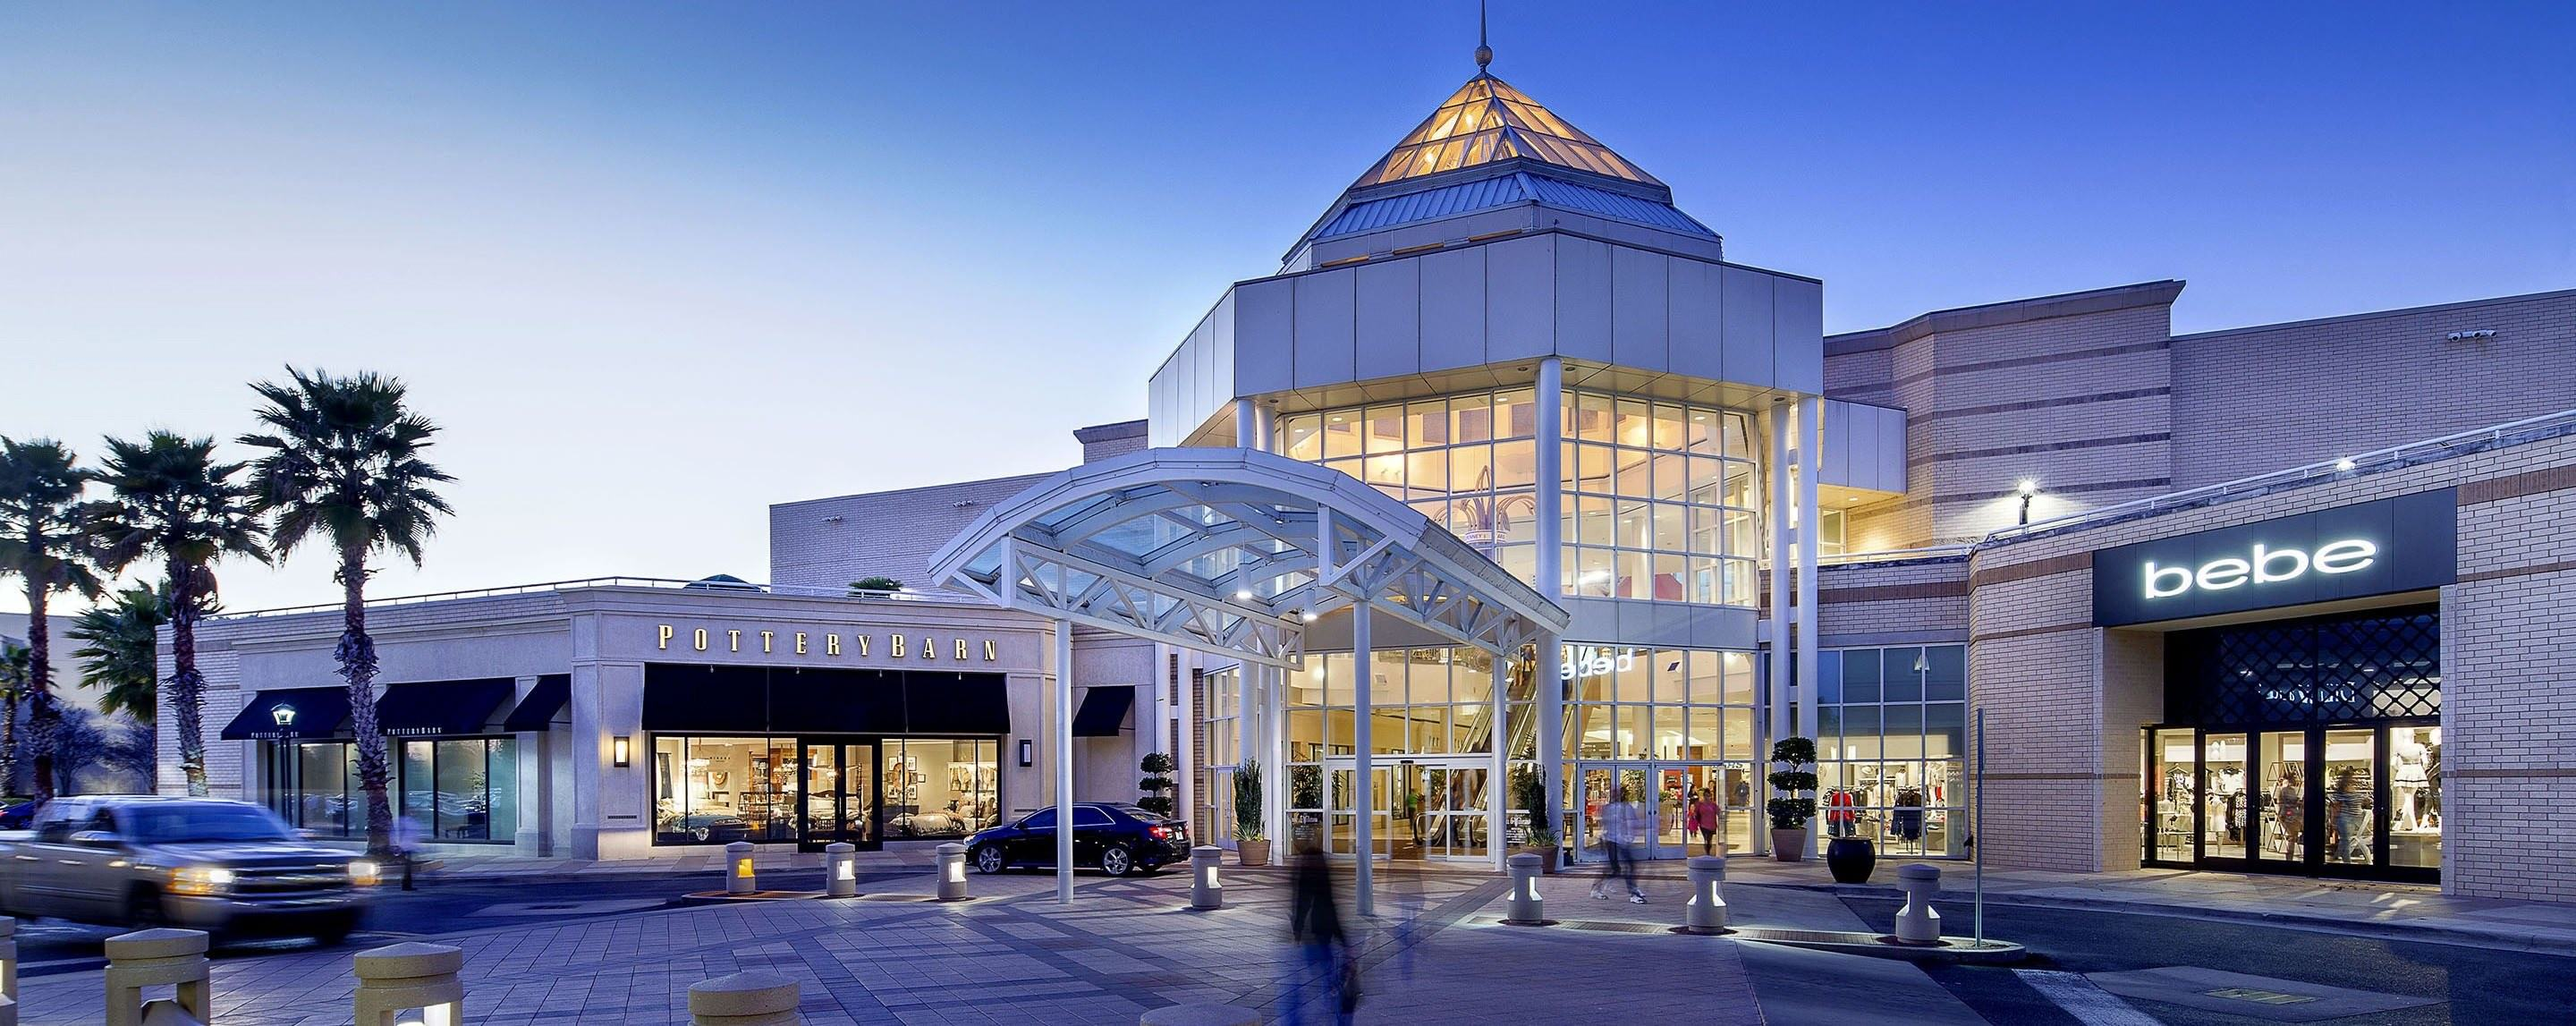 A GGP property entrance is lit up with their glass atrium with Pottery Barn and bebe stores directly to the sides.